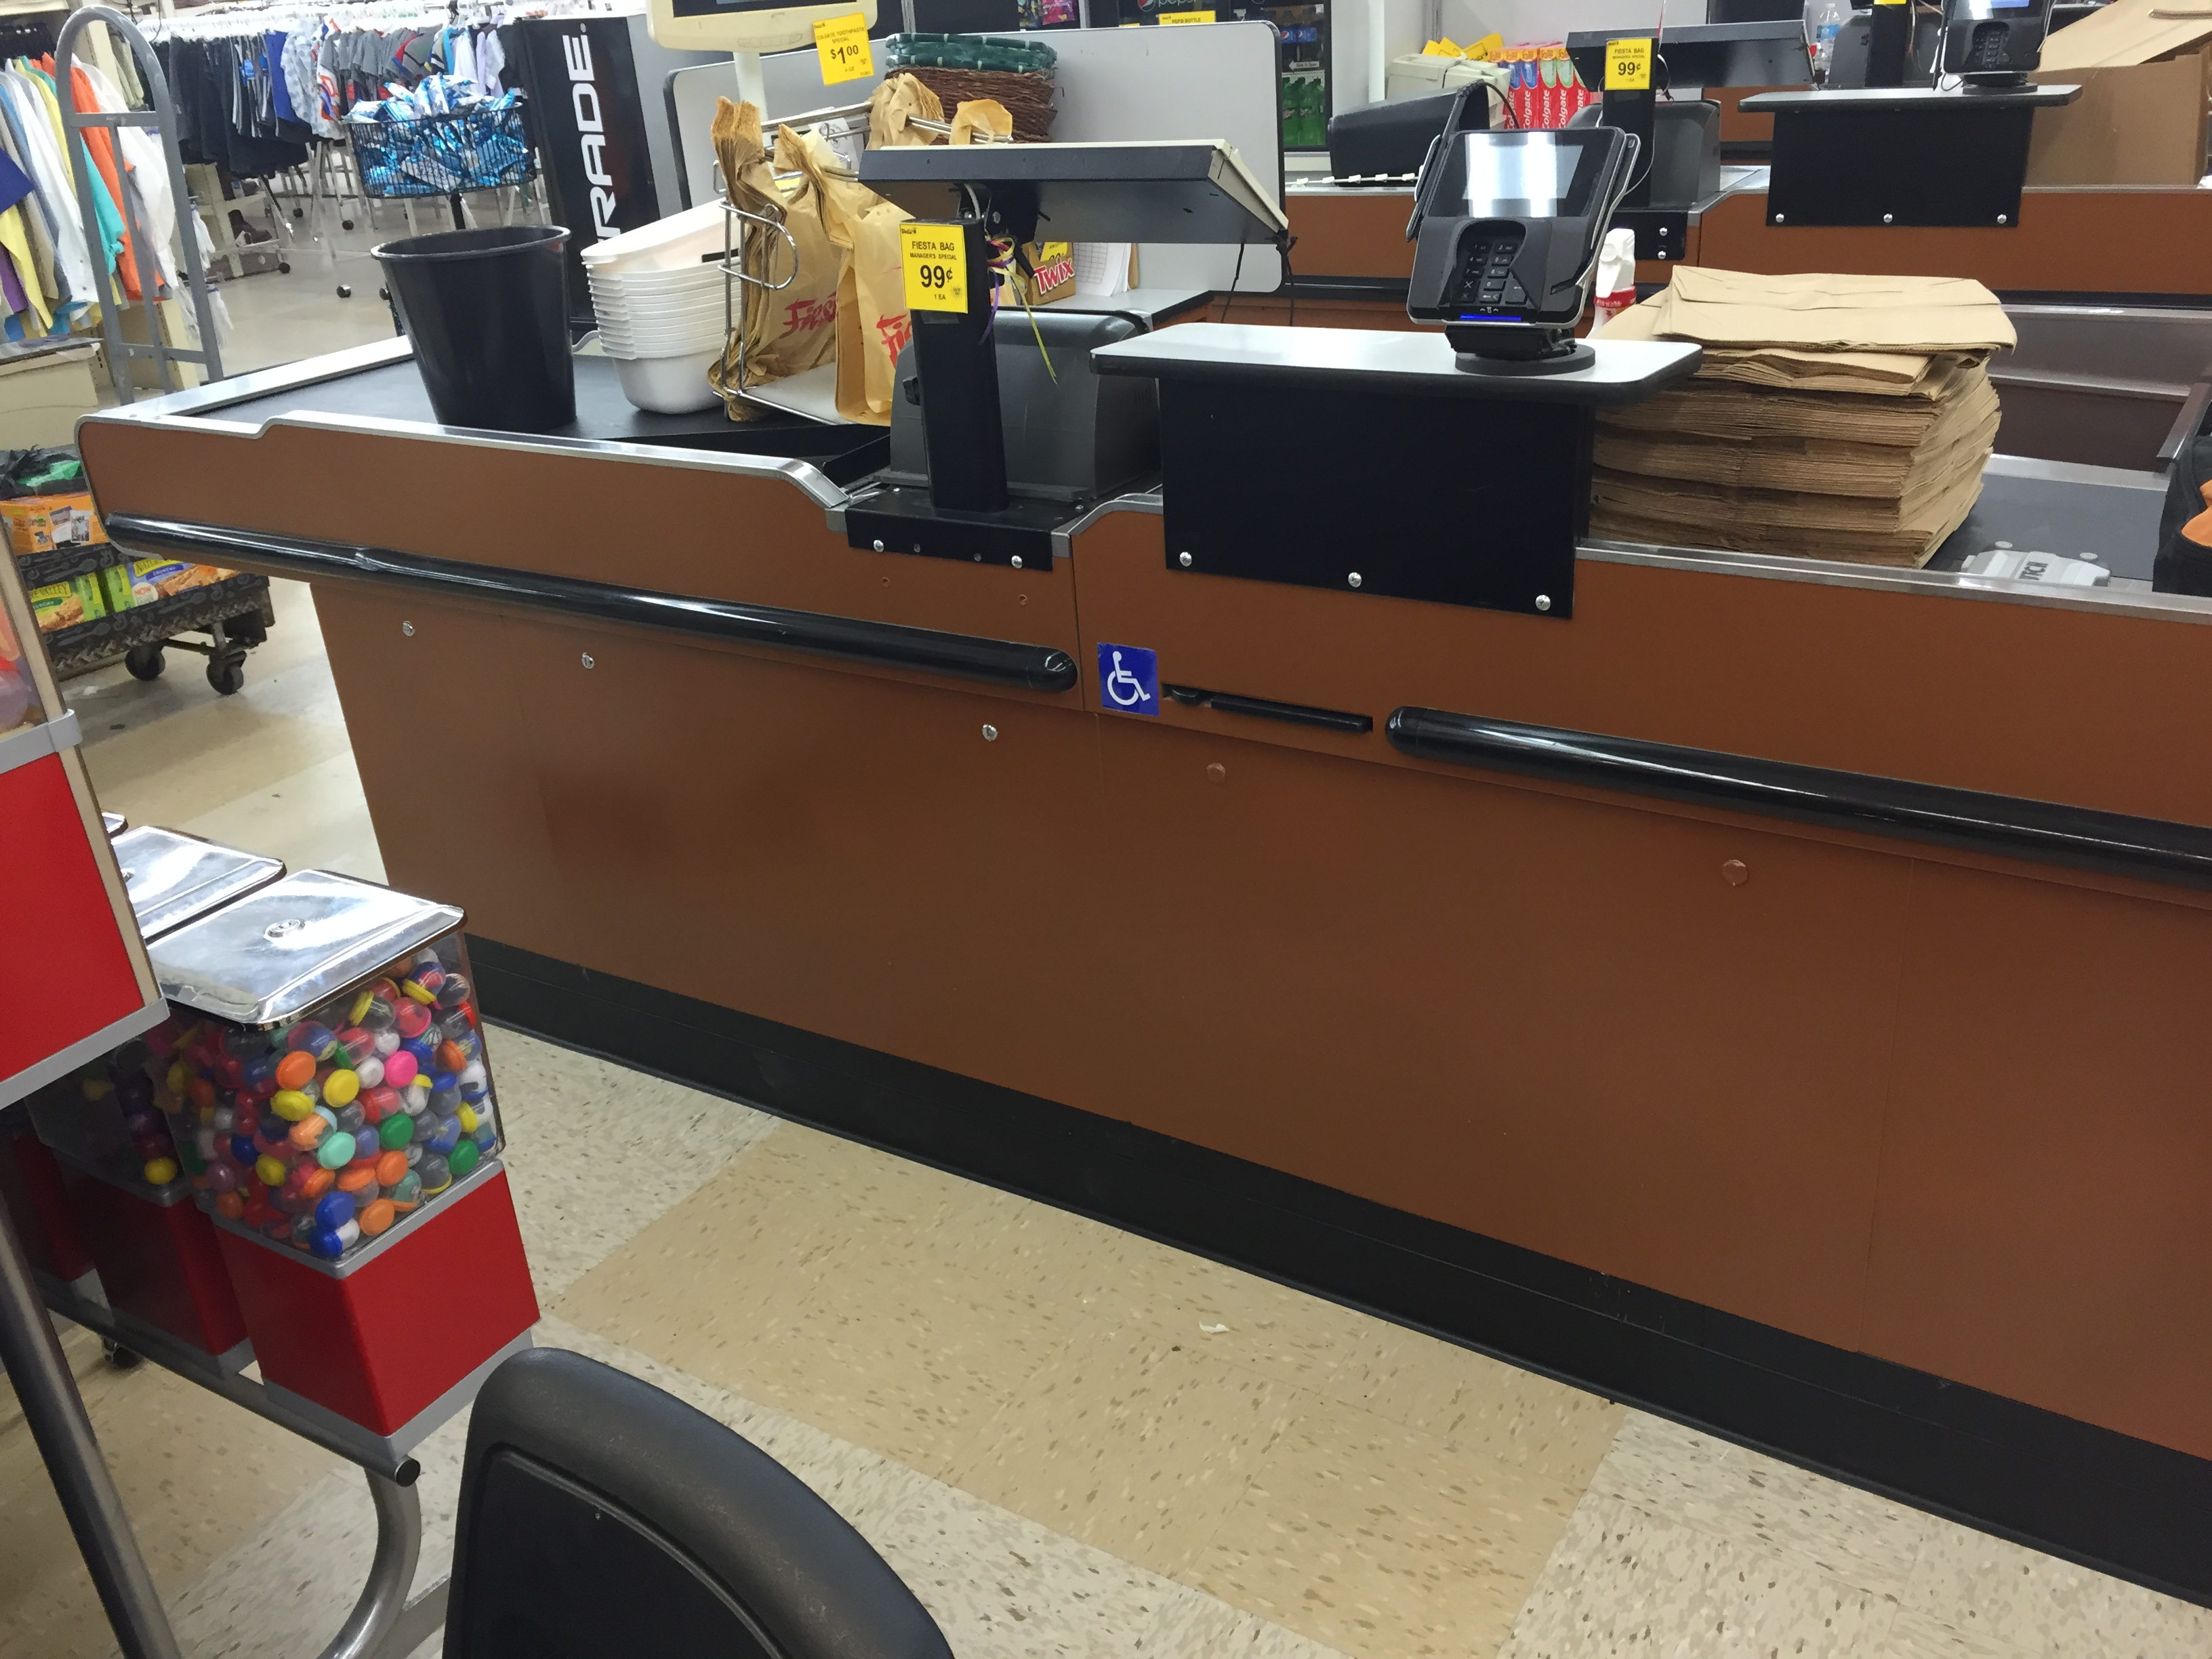 grocery check stands